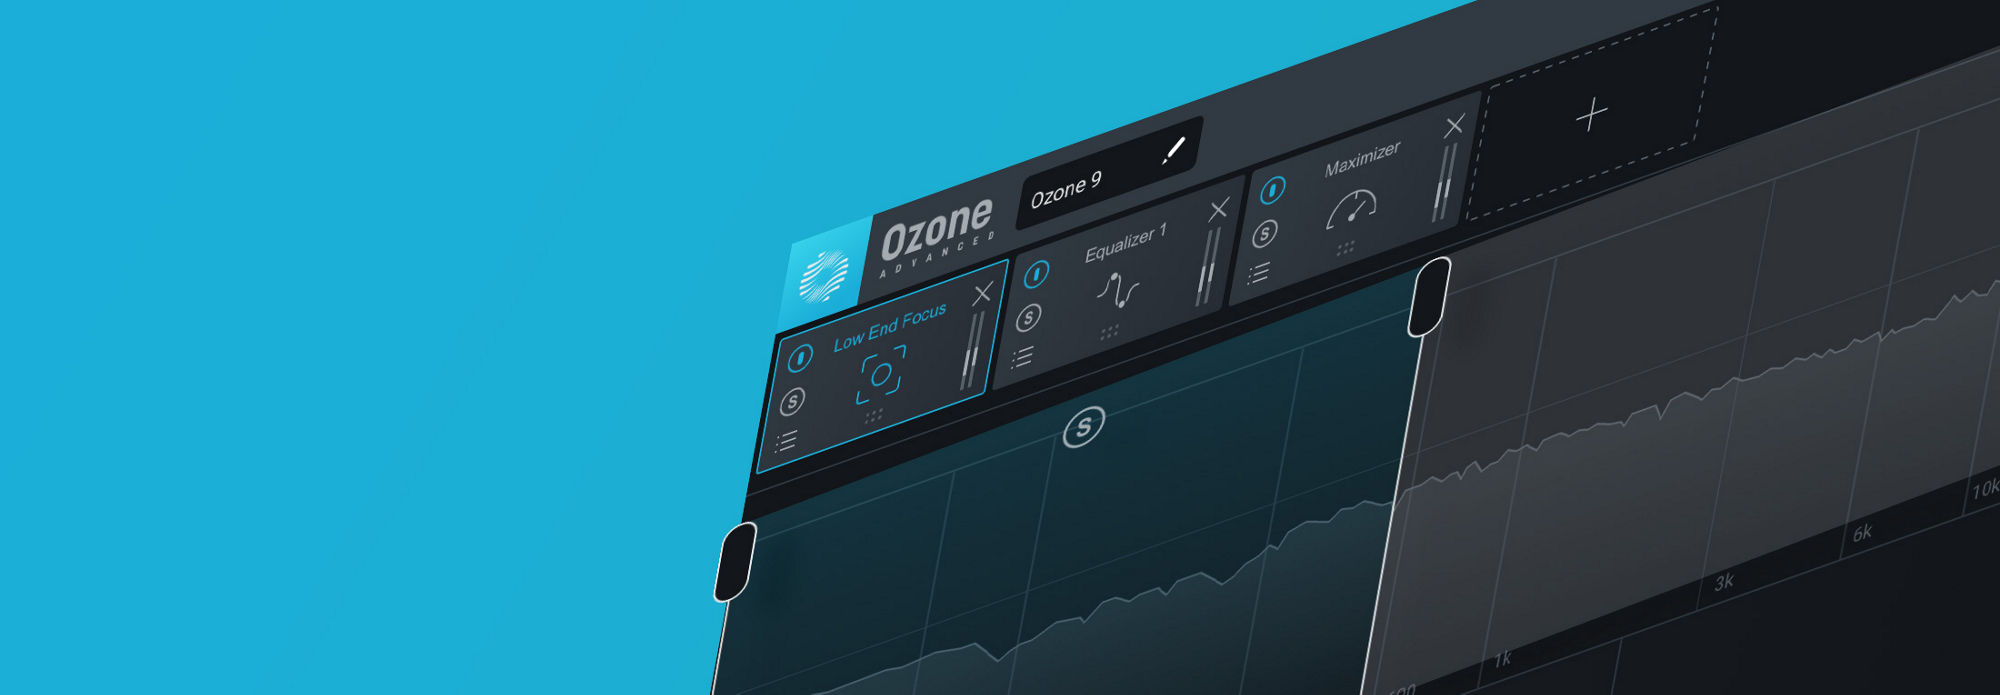 Discover the new Low End Focus module in Ozone 9.